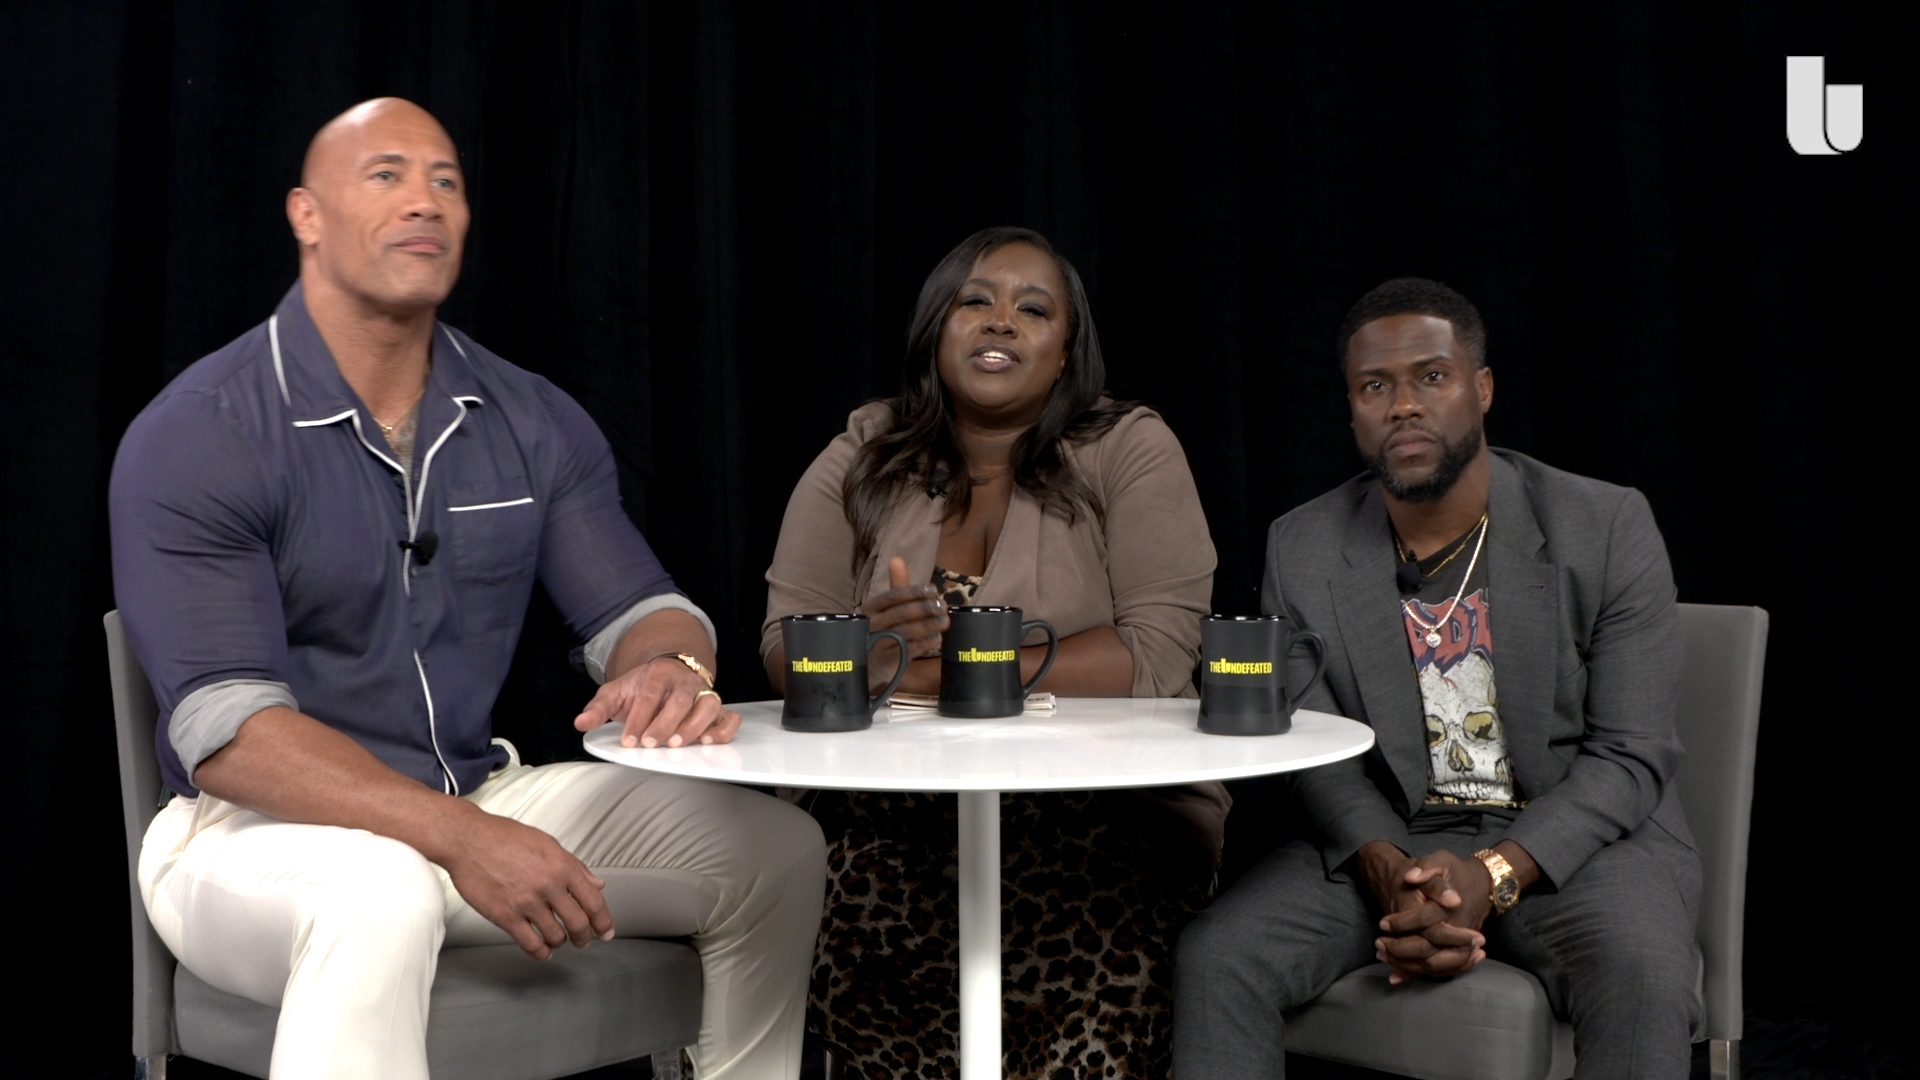 Special Edition Roundtable Dwayne Johnson And Kevin Hart On